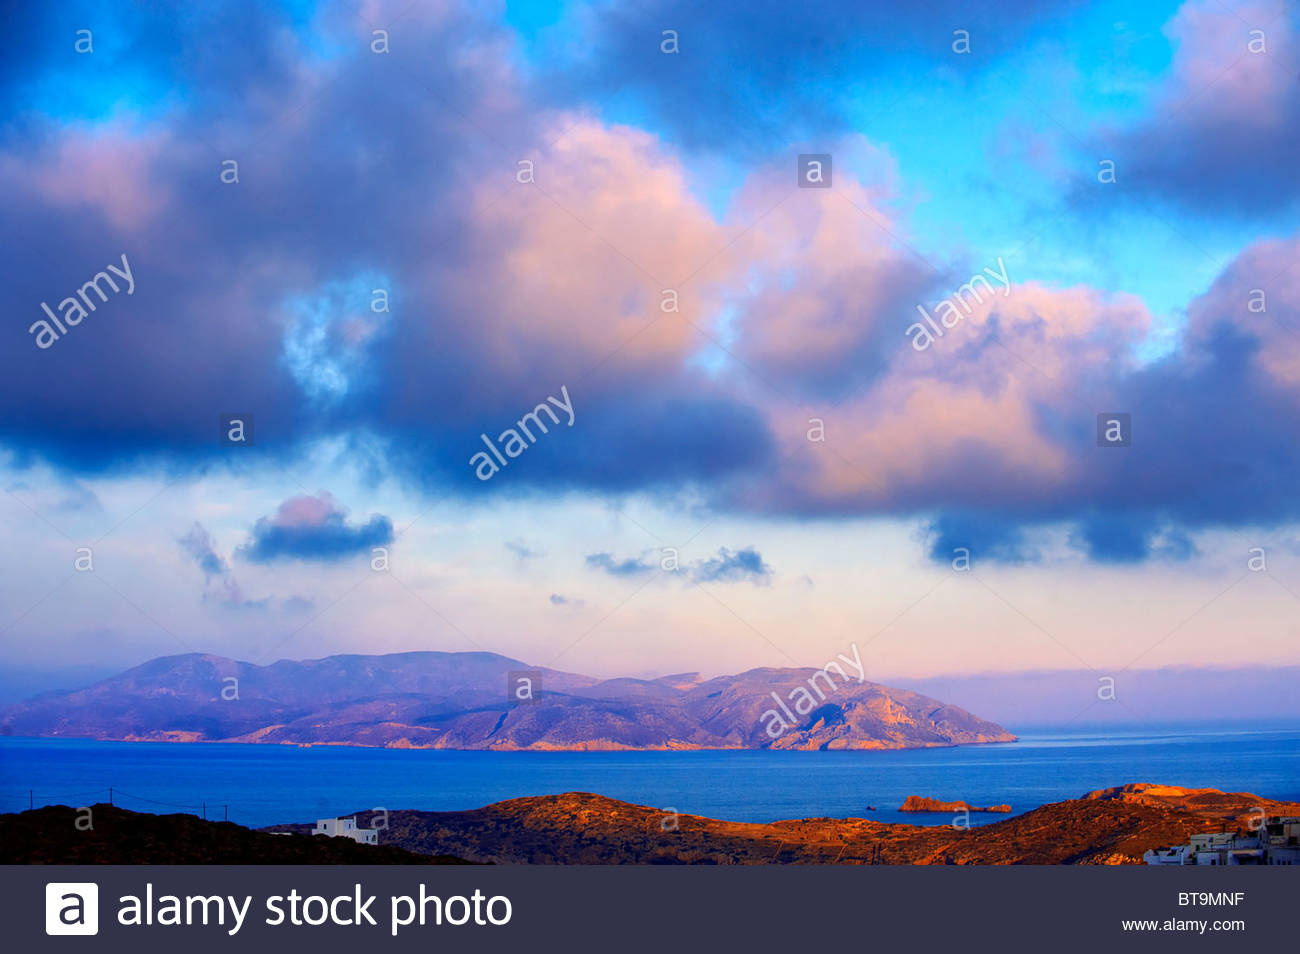 Sunrise over the Cyclades Island of Ios, Greece - Stock Image